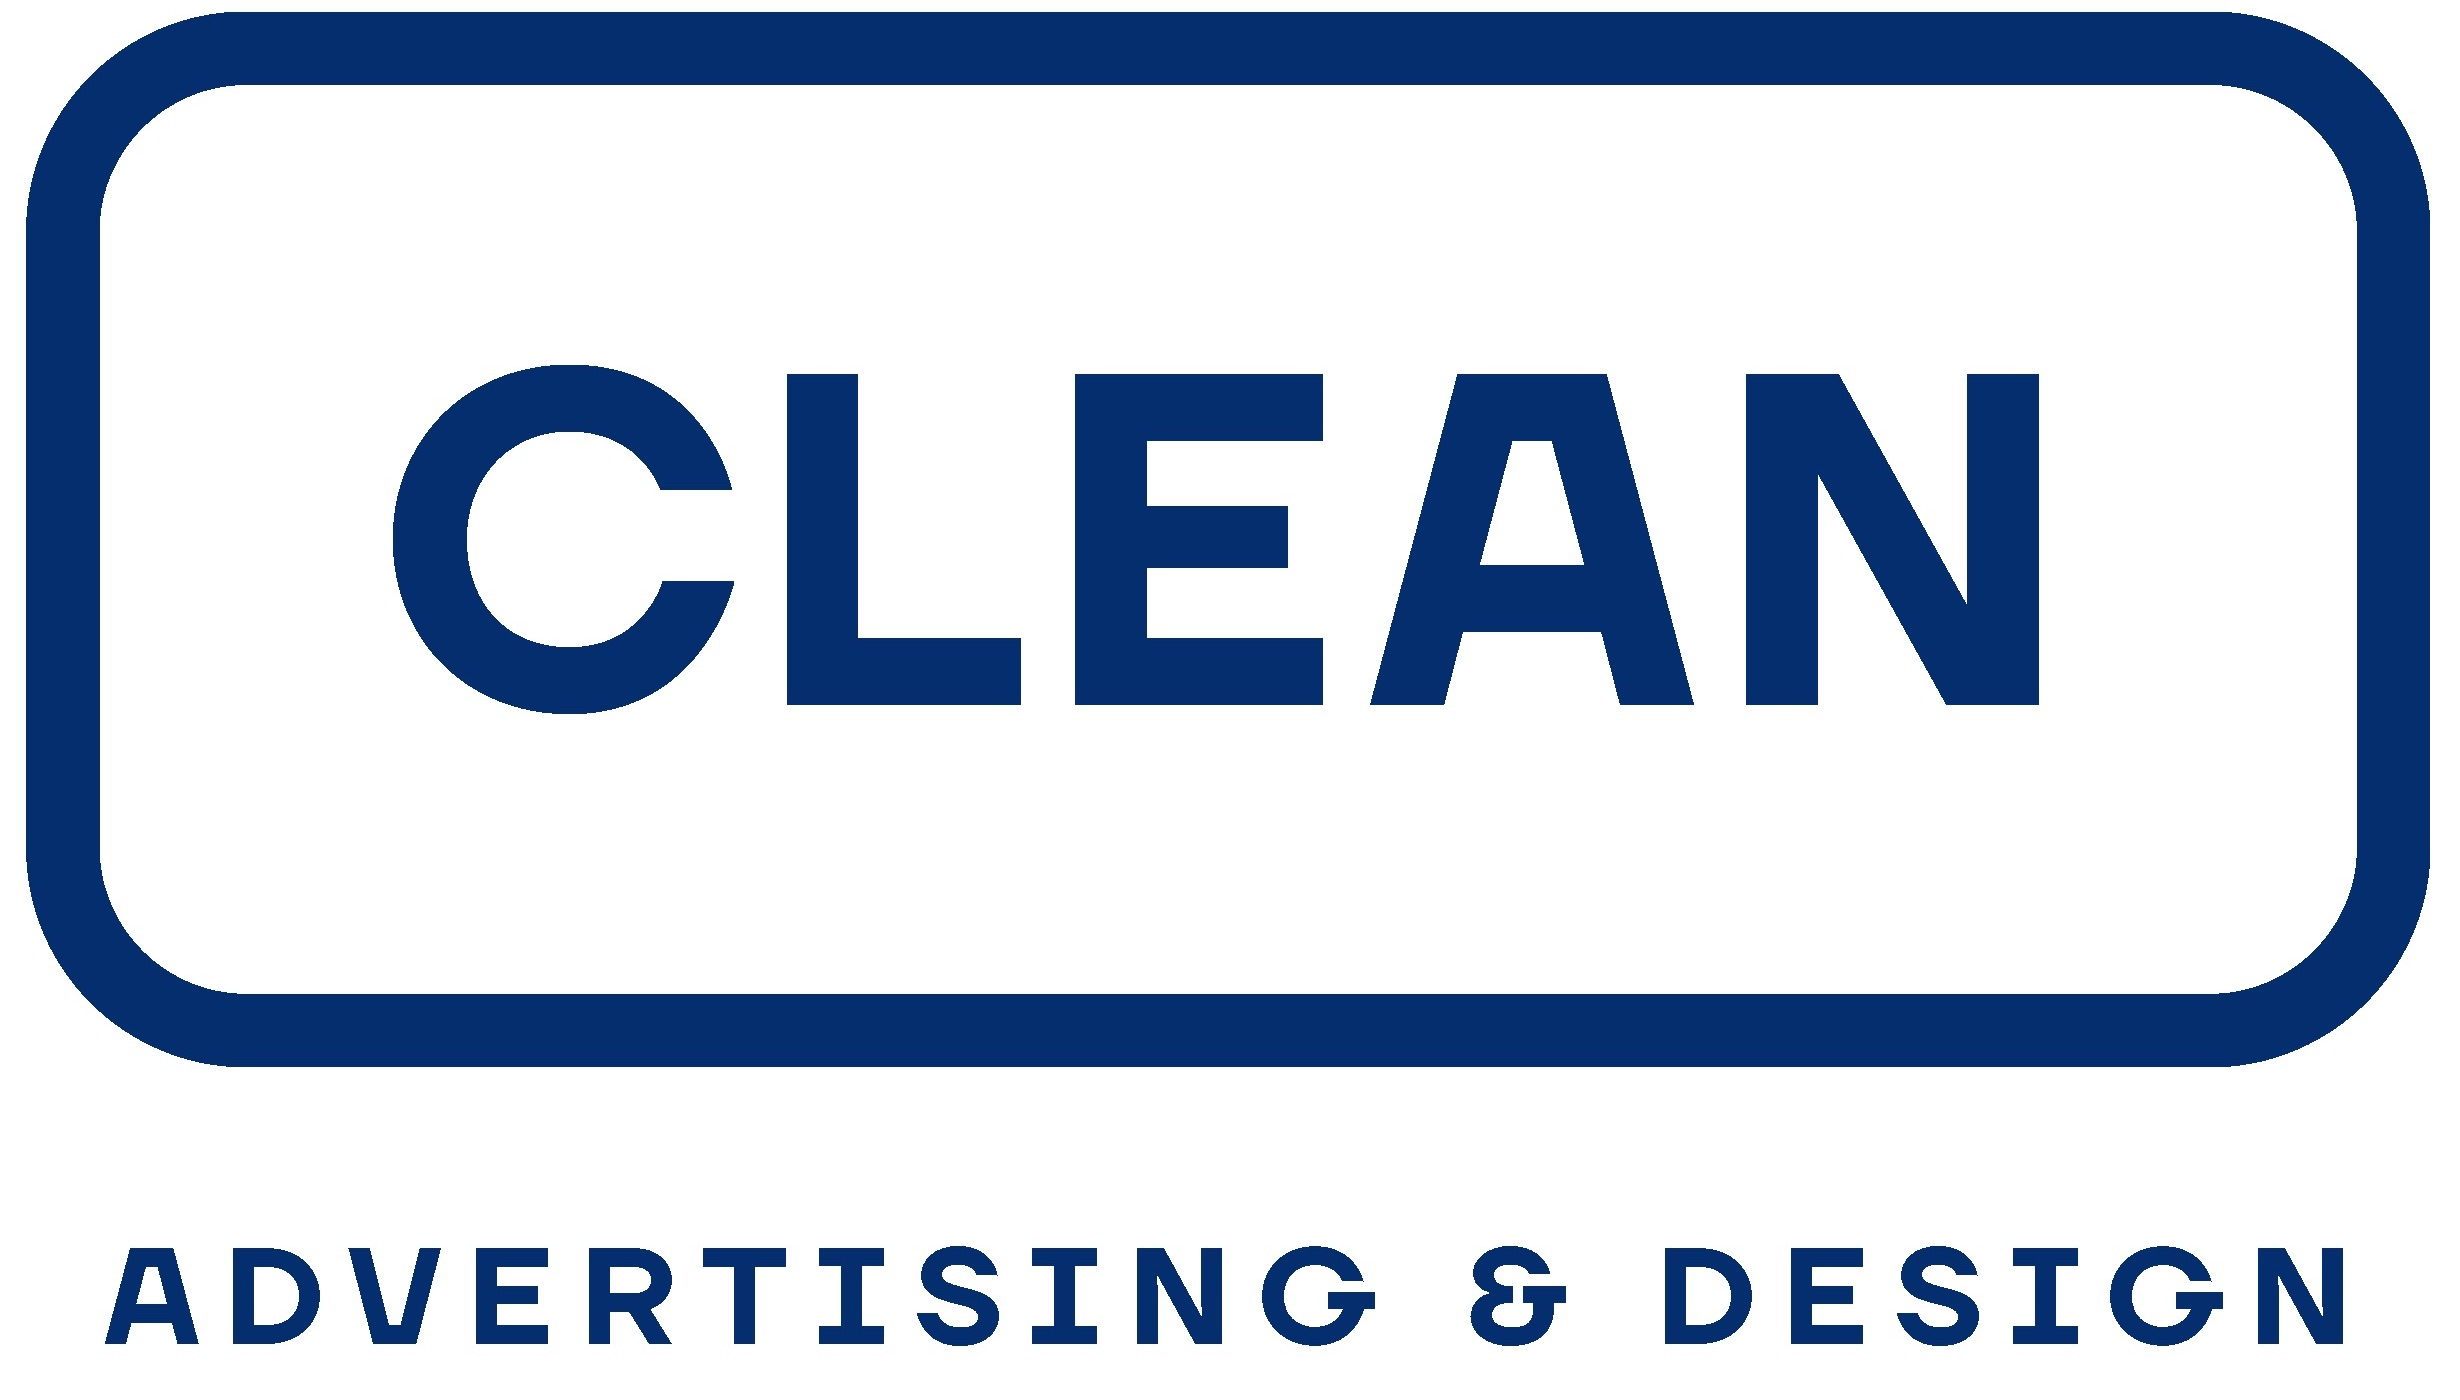 Clean: Full Strength Advertising & Design